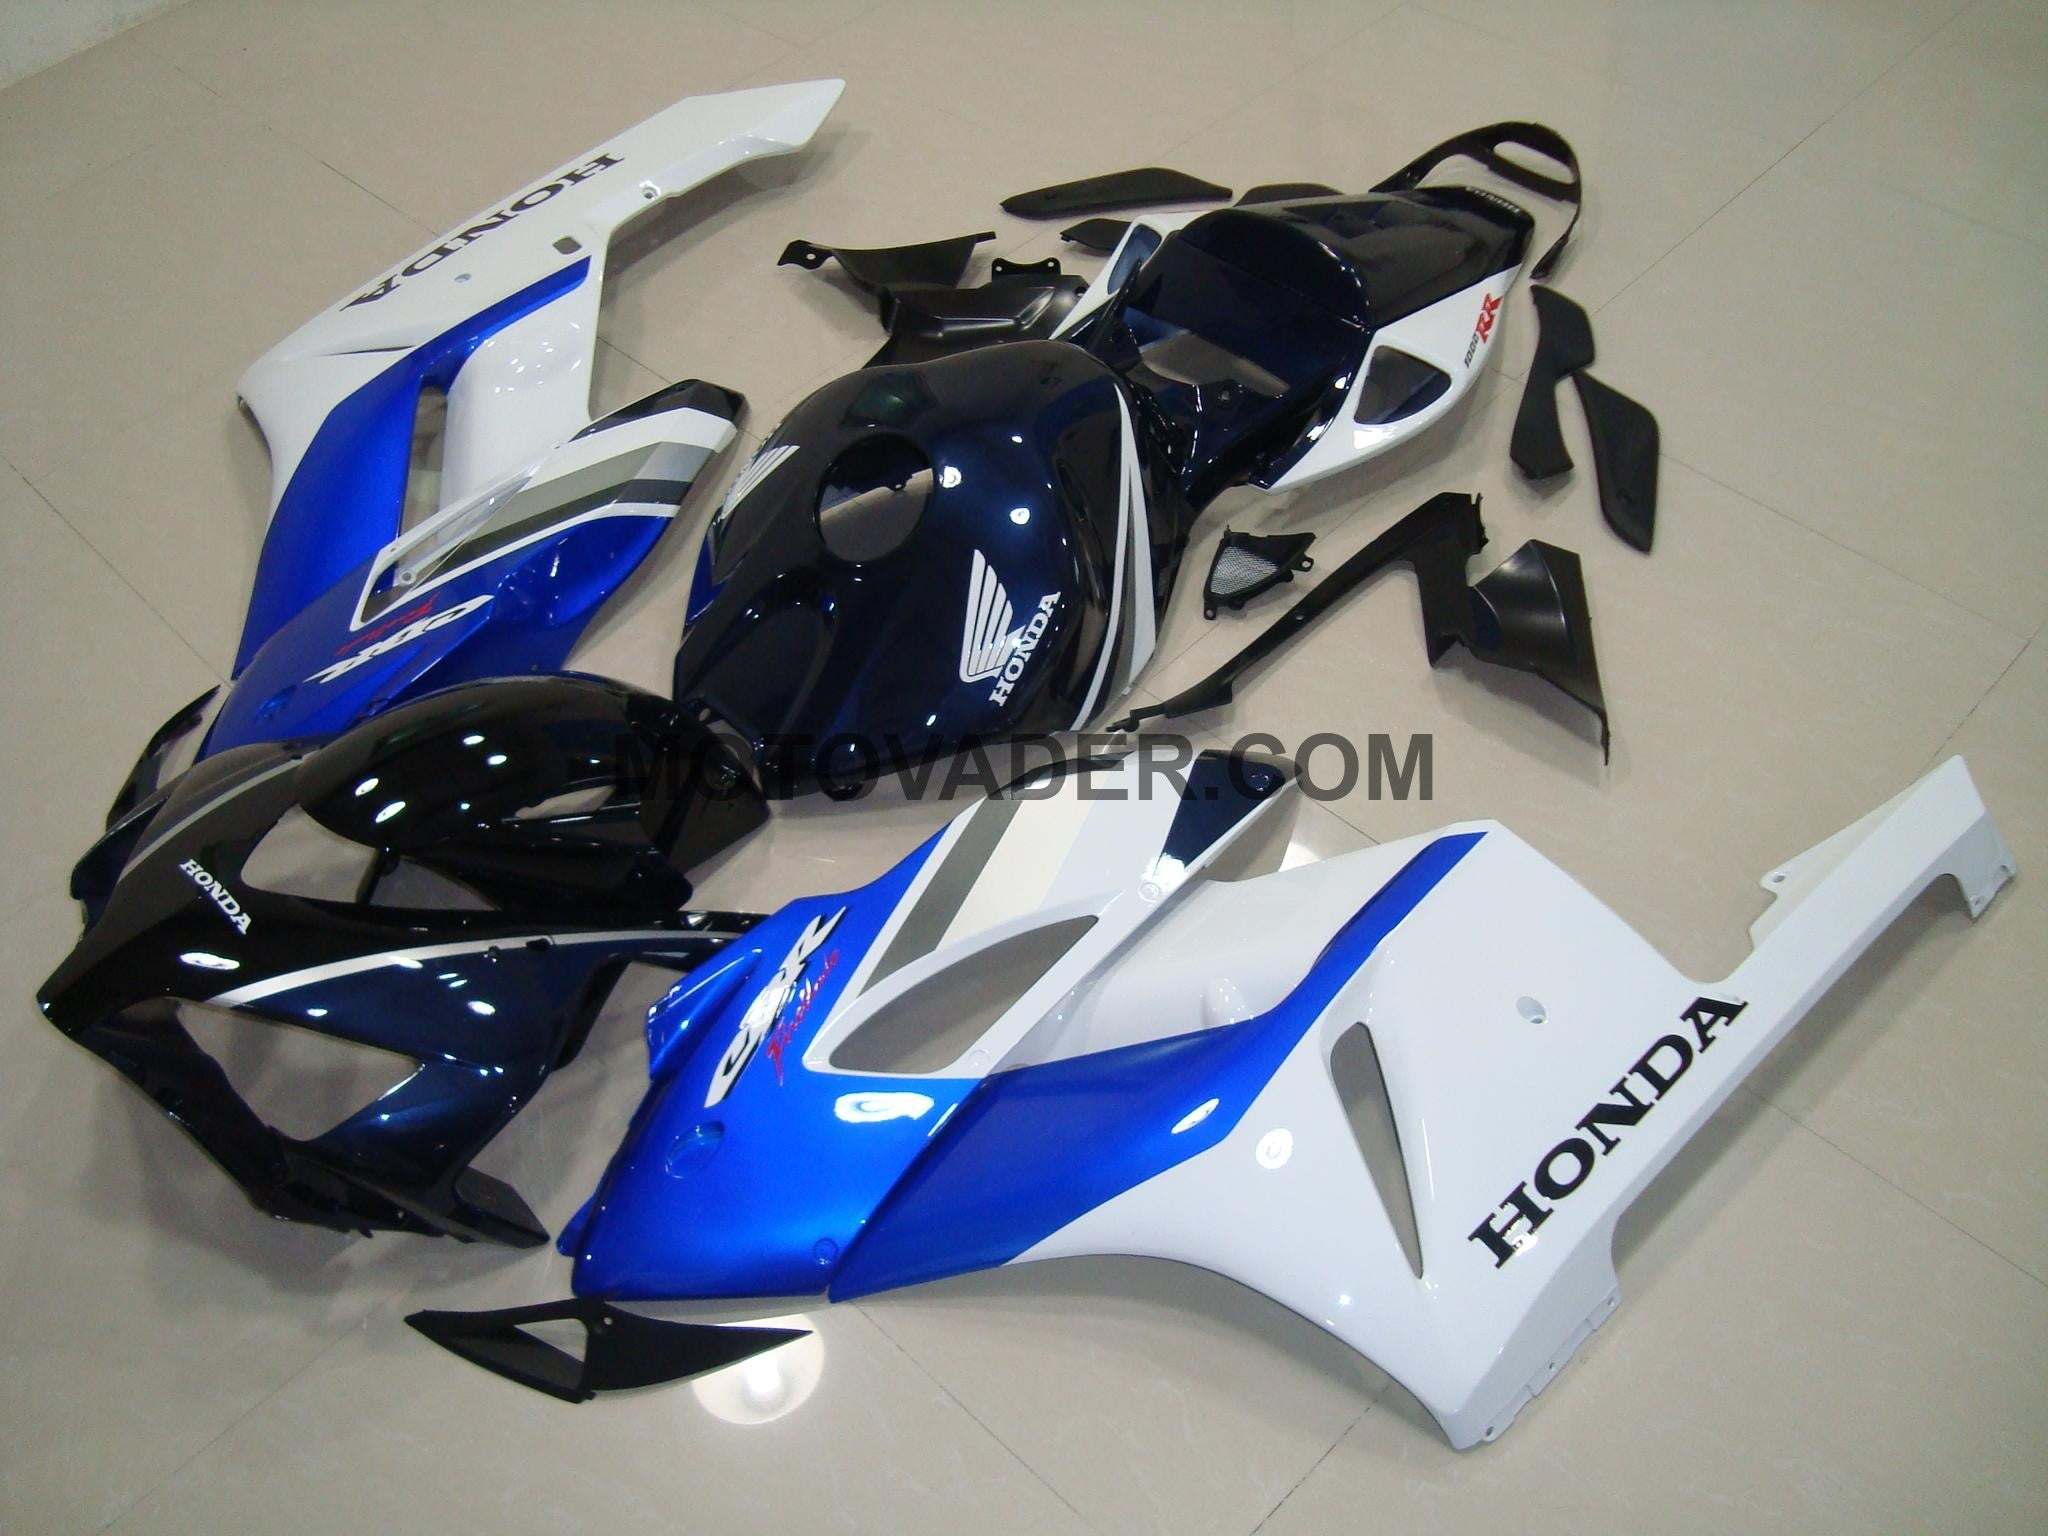 Honda CBR 1000RR 2004-2005 Dark Blue & White Fairing